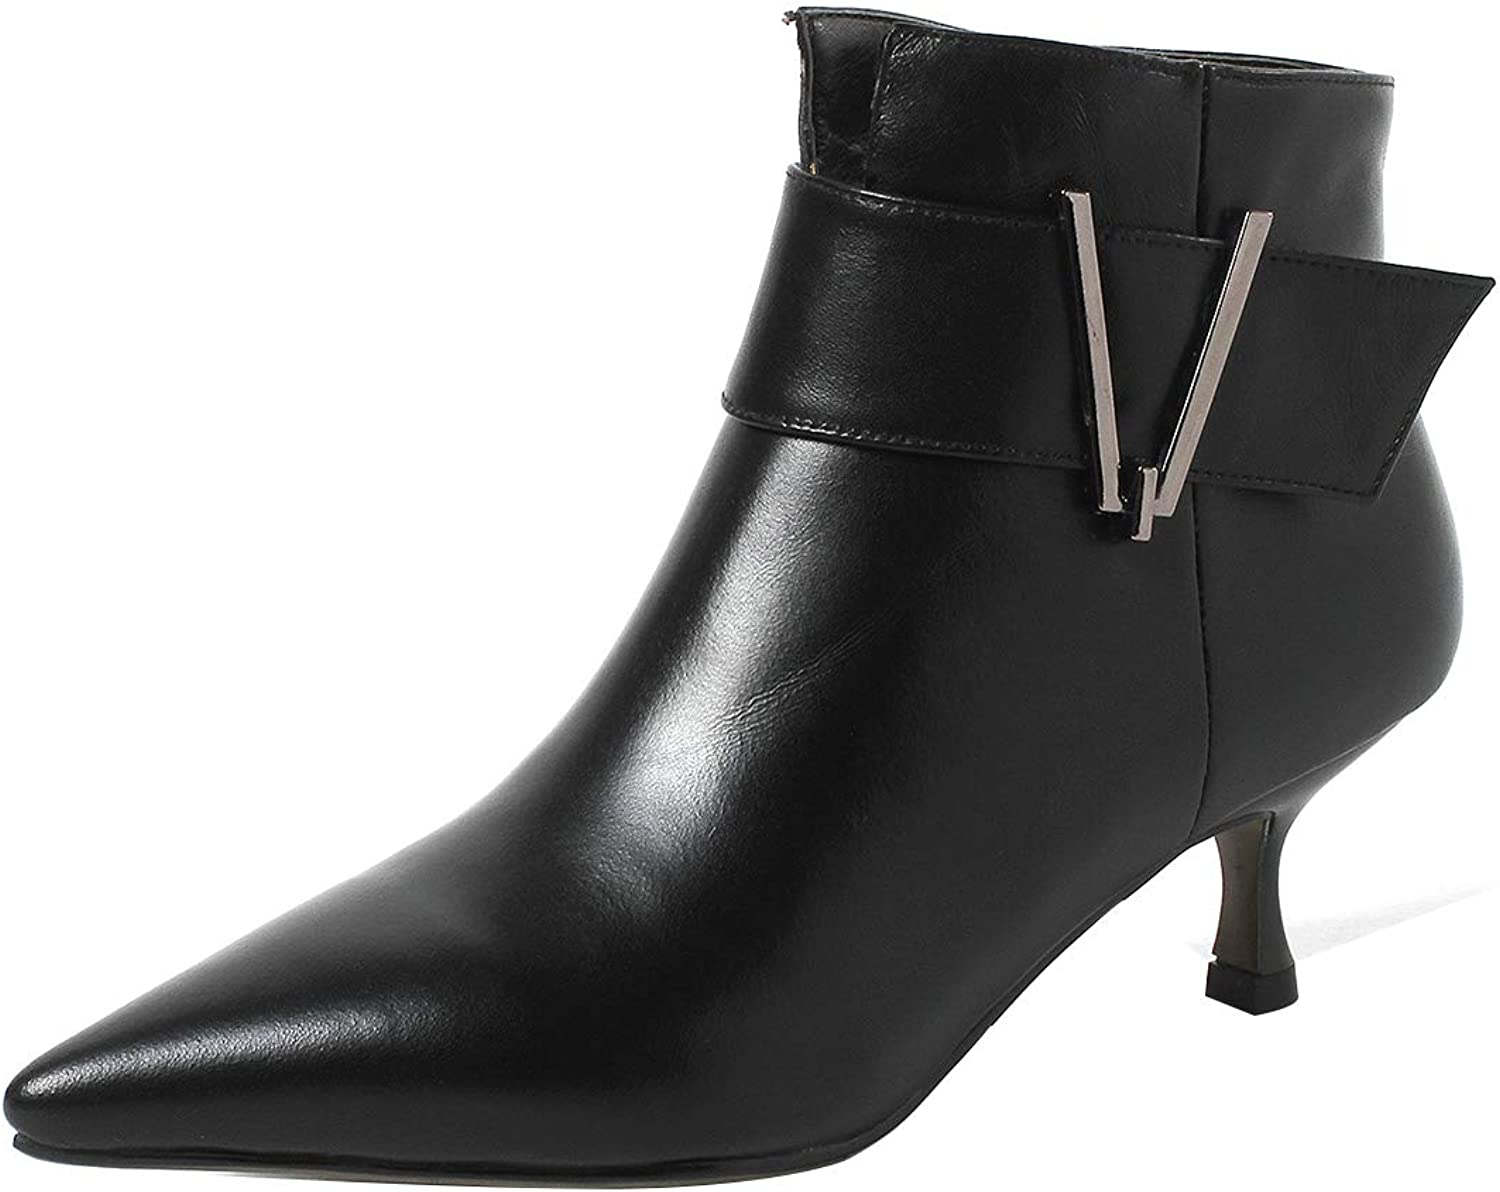 Eithy Women's Shadd Stiletto Ankle-high Zipper Leather Boots